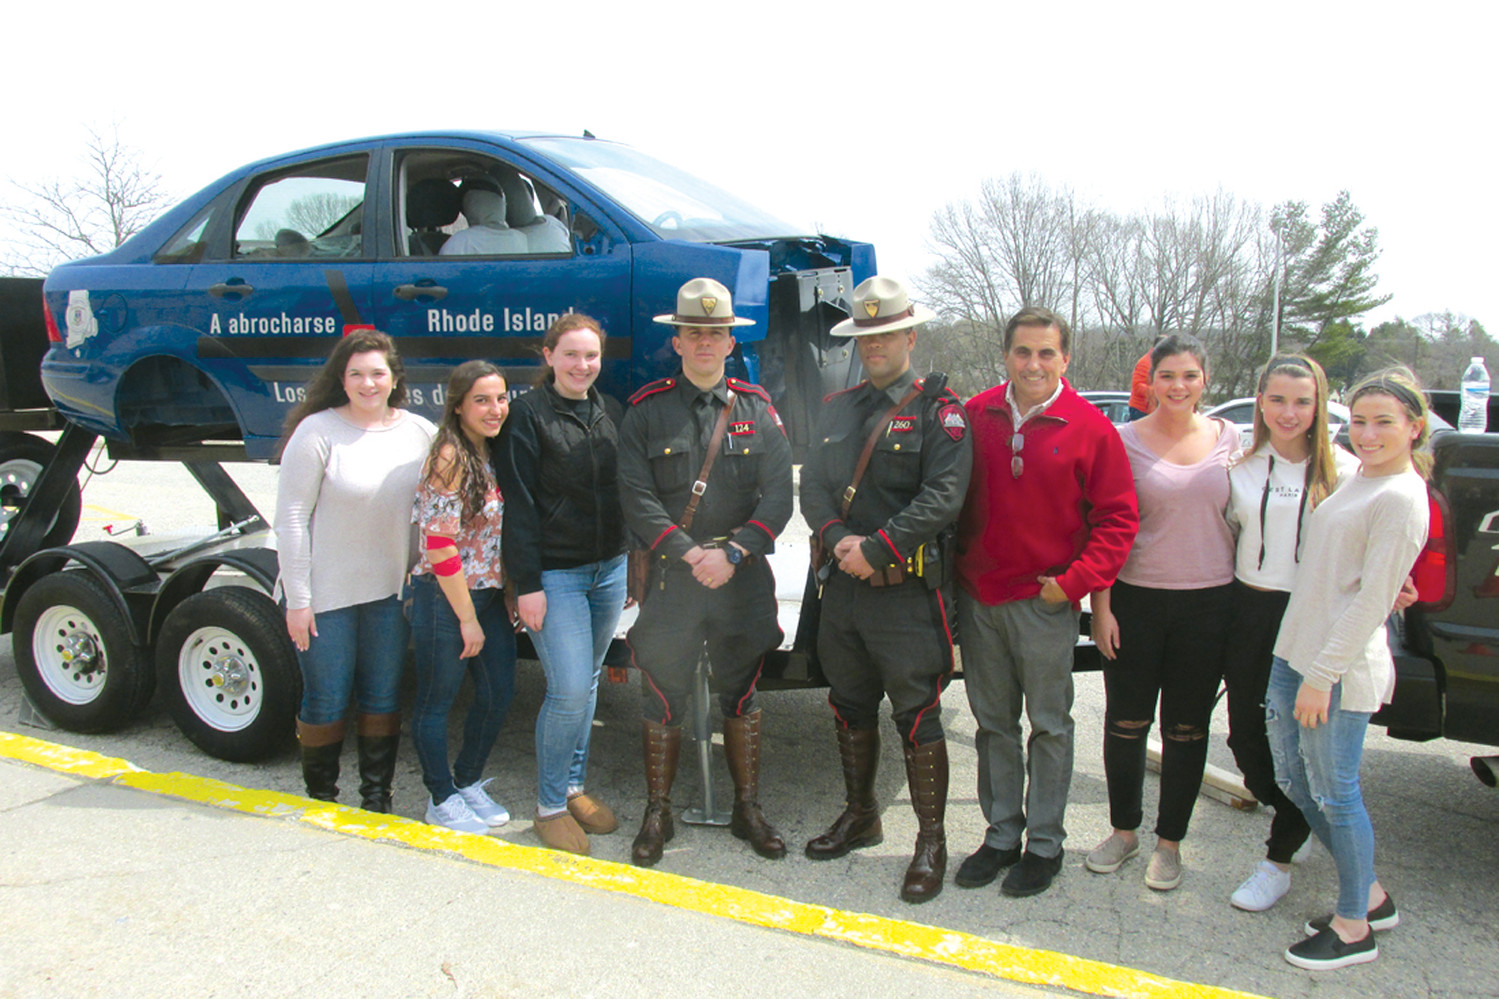 SADD STAFF ON HAND: Members of Johnston High's Students Against Dangerous Decisions that took part in a recent mock car crash and roll over with Rhode Island State Troopers LJ Fiorenzano and Juan Coronado, are from left: Emily Watson, Lauren Messa, Allison Vessella, Advisor Greg Russo, Allyssa Johnston, Madison Plouffe and Jordan Moretti. (Sun Rise photos by Pete Fontaine)